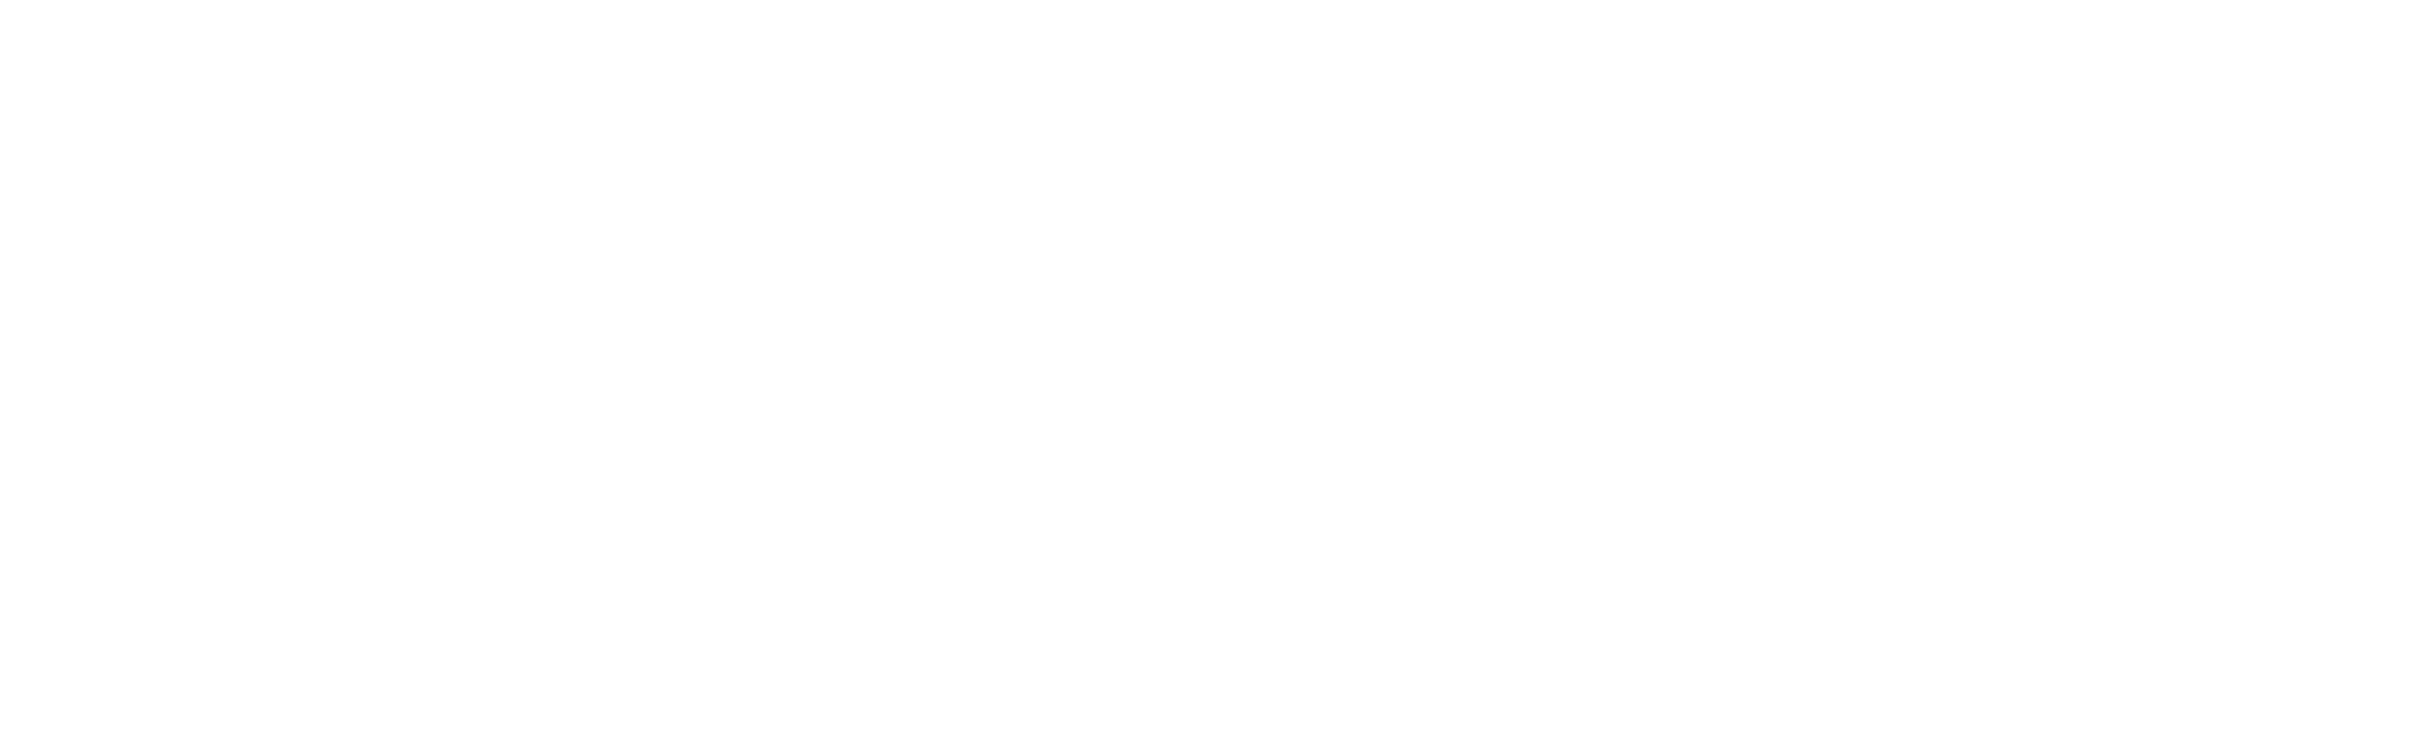 Heritage Baptist Church | Johnson City, TN